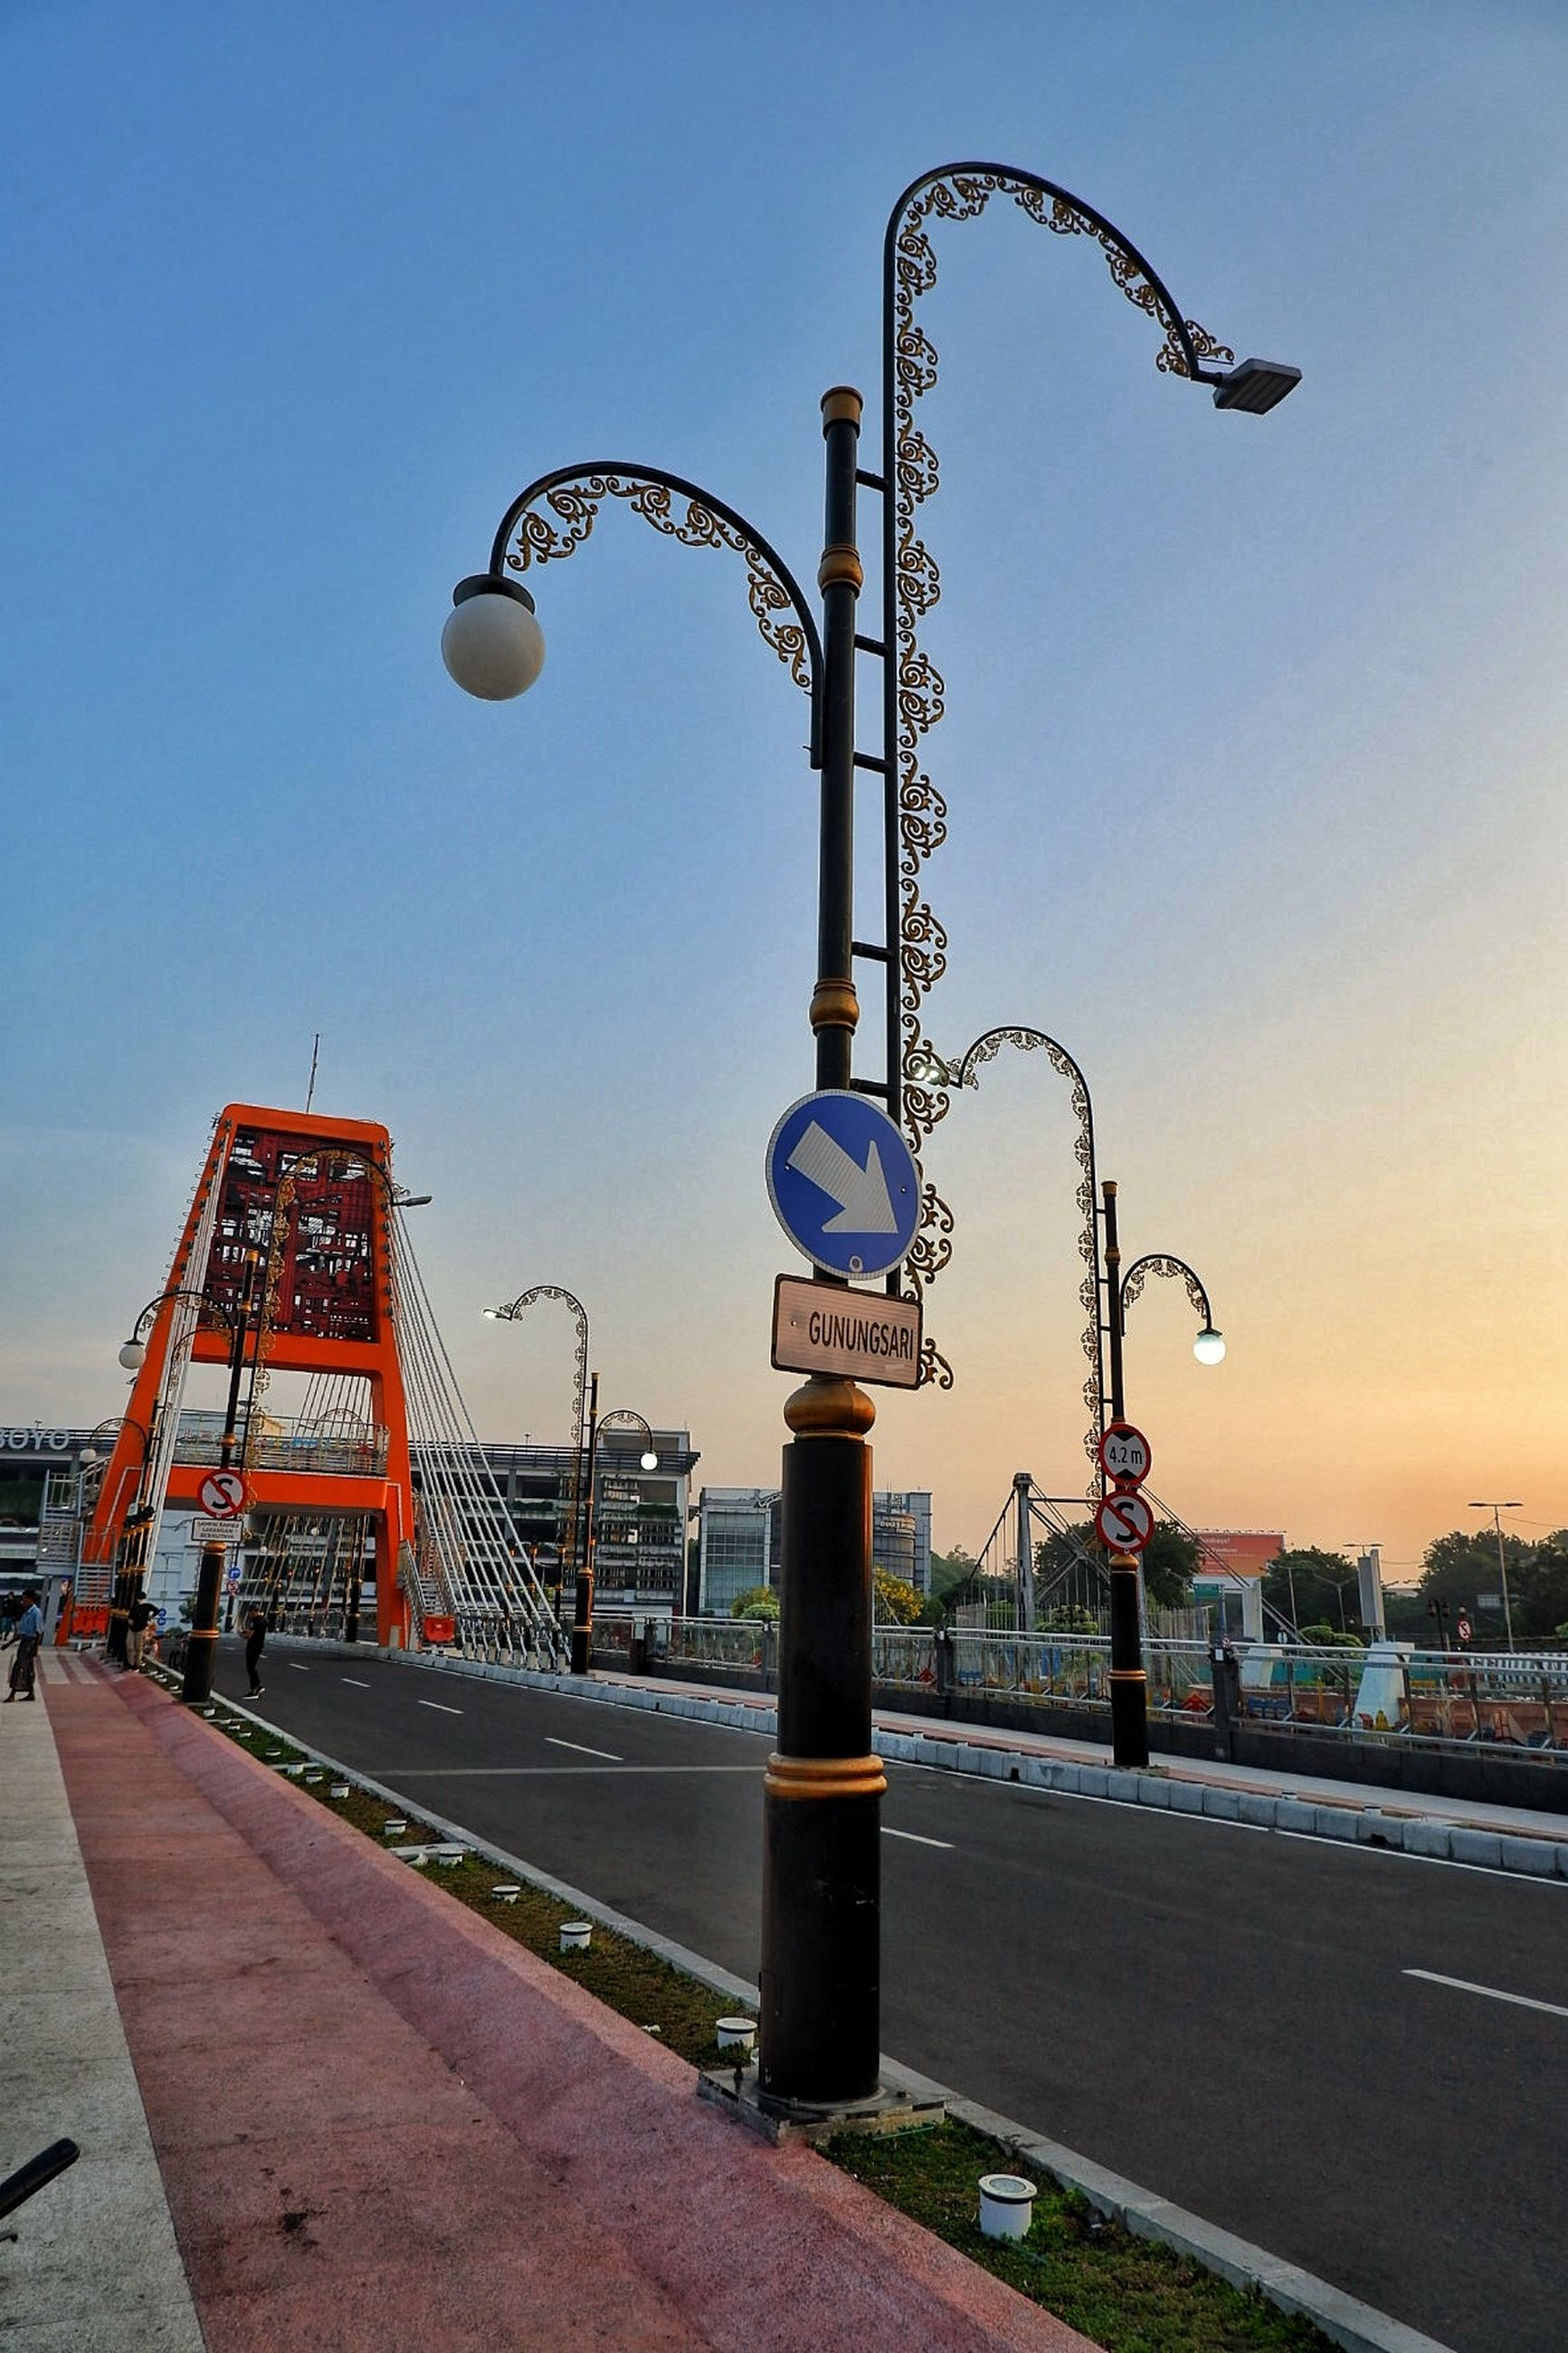 sky, street light, street, architecture, lighting equipment, nature, built structure, no people, city, clear sky, transportation, outdoors, road, day, sunset, metal, building exterior, machinery, dusk, footpath, construction equipment